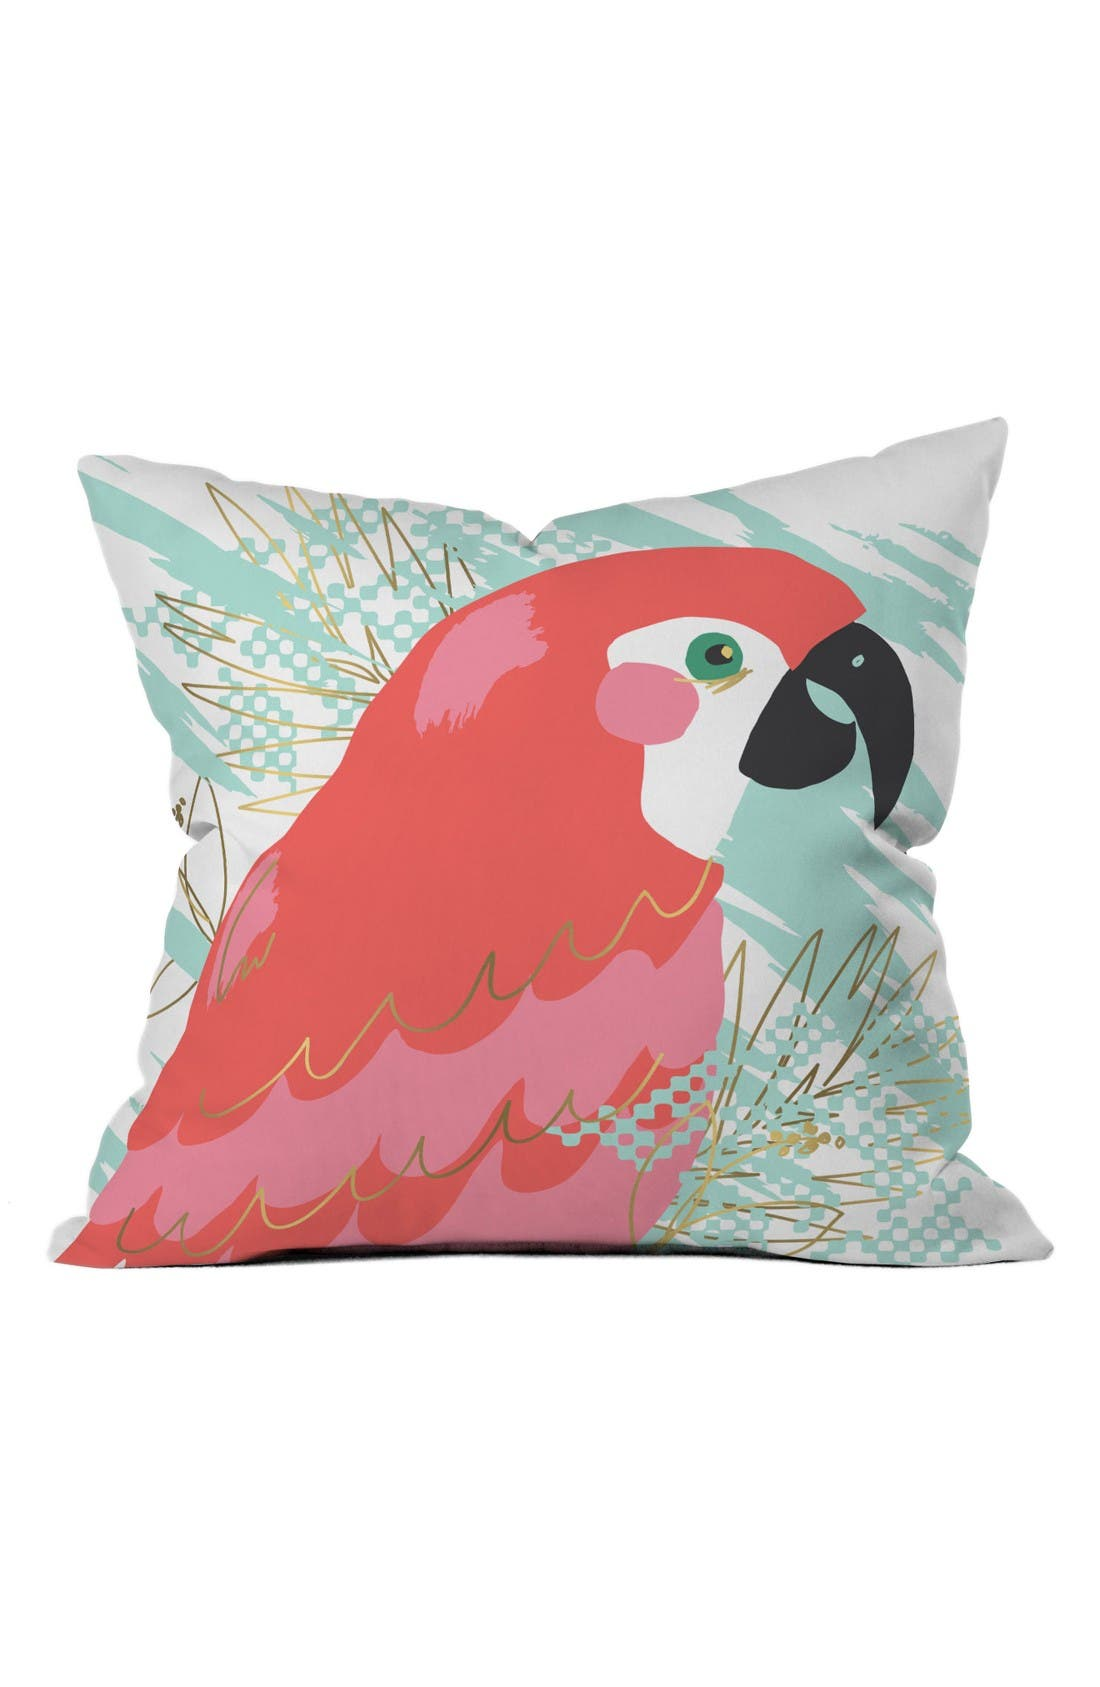 Main Image - Deny Designs On The Wings Pillow